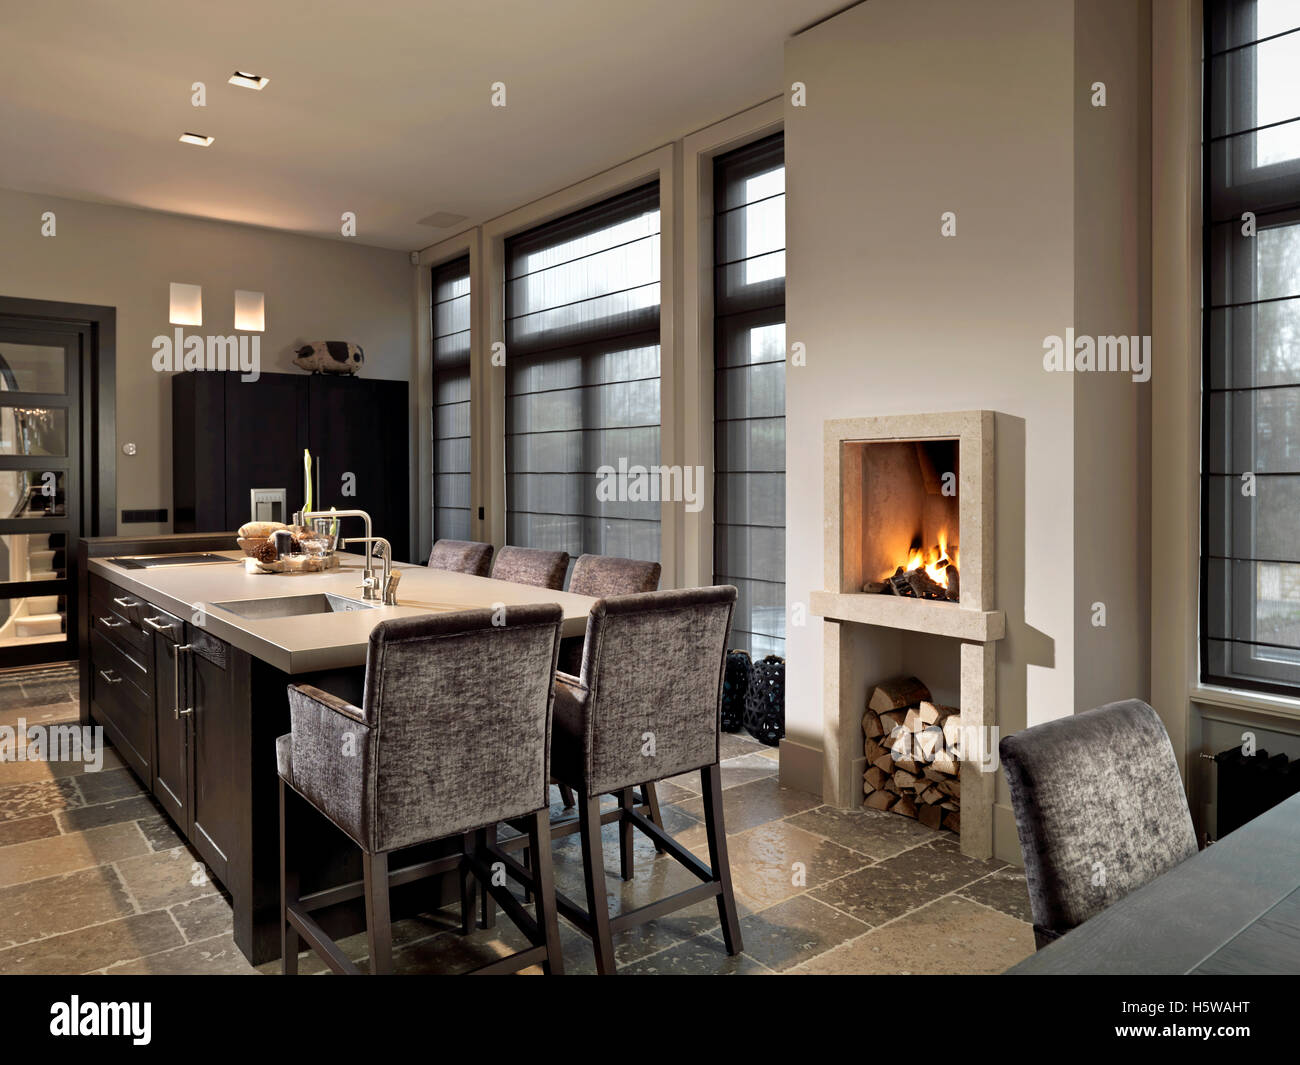 Fireplace in kitchen with table - Stock Image